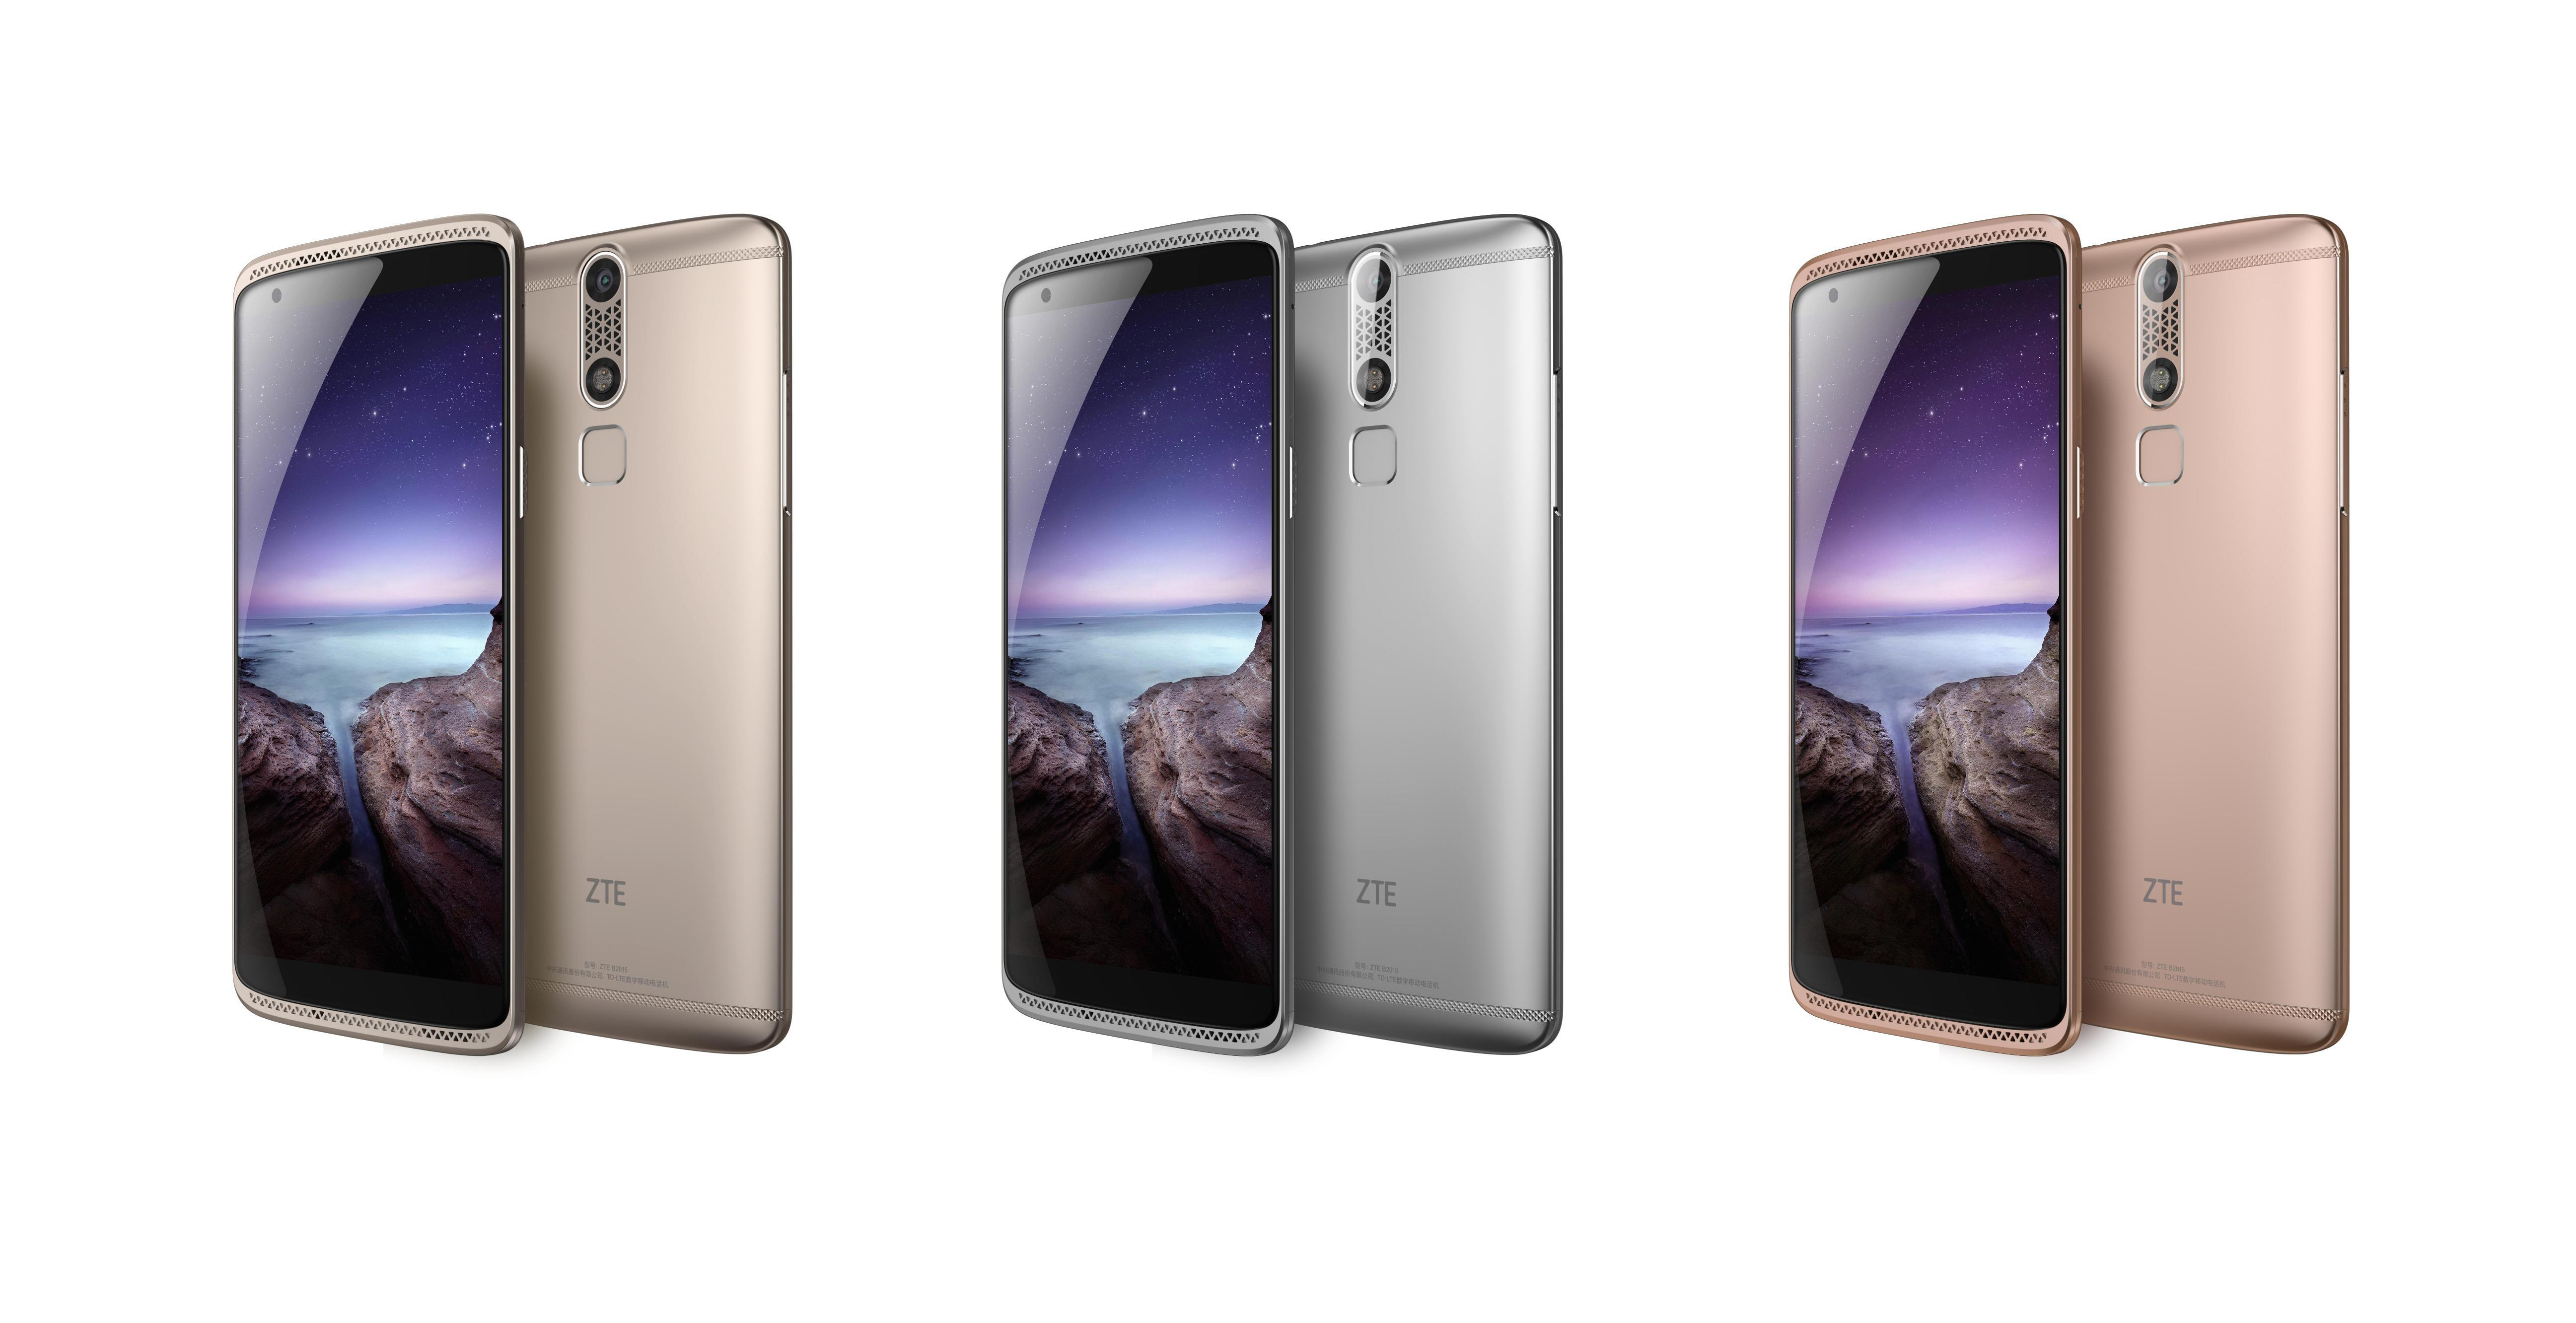 ZTE AXON mini available in three color options - Ion Gold, Chromium Silver and Rose Gold (Photo: Business Wire)